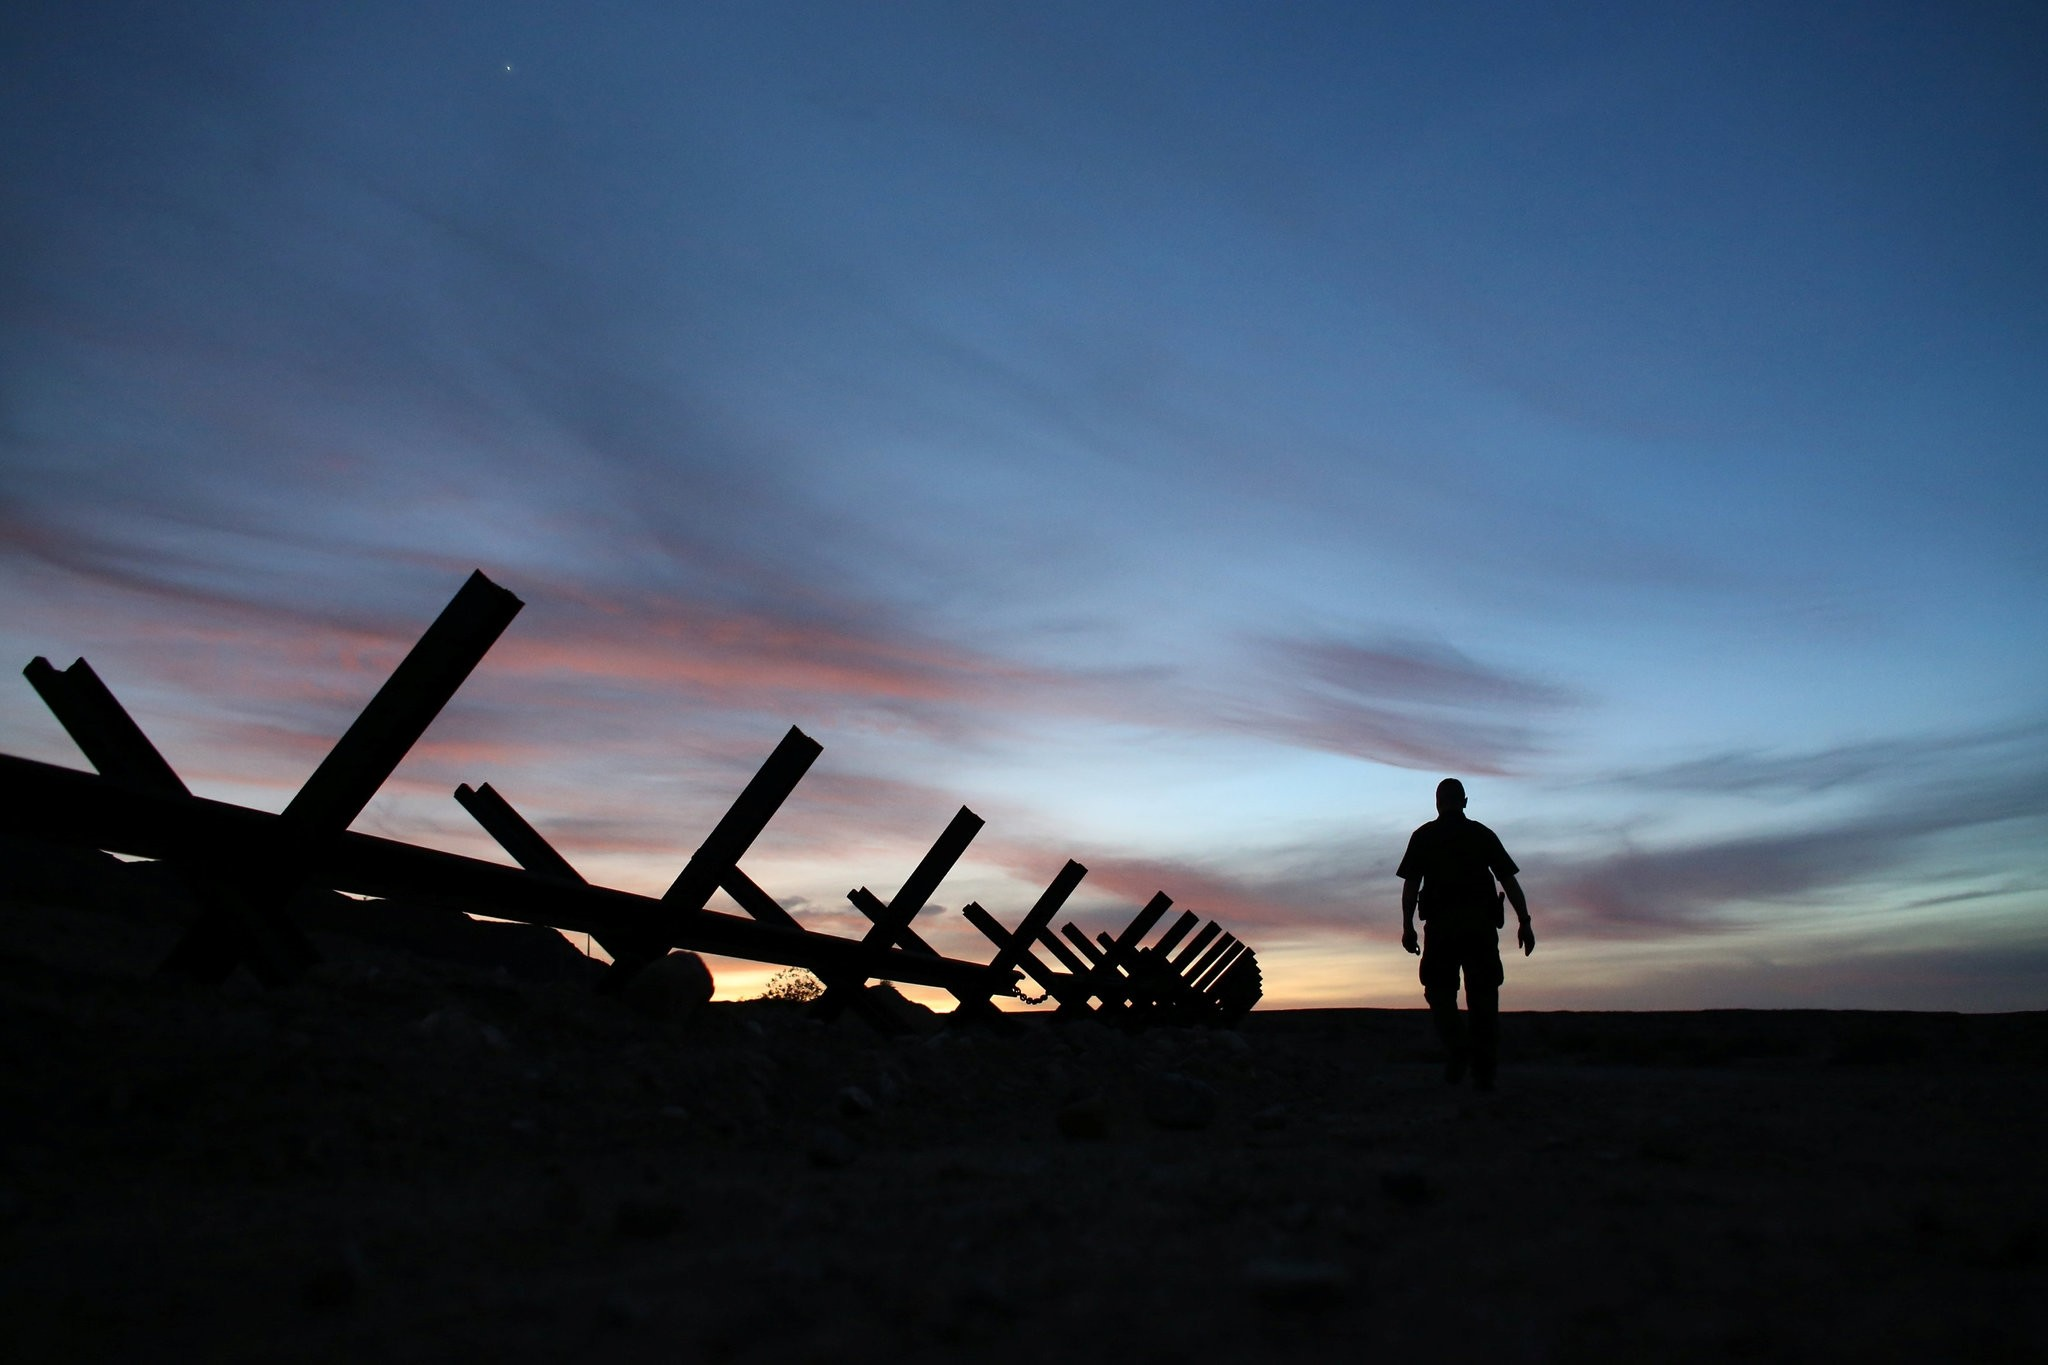 U.S. border patrol agent Alessio Faccin walks along the border fence separating Mexico from the United States near Calexico, California, U.S. February 8, 2017. picture taken February 8, 2017. (REUTERS Photo)